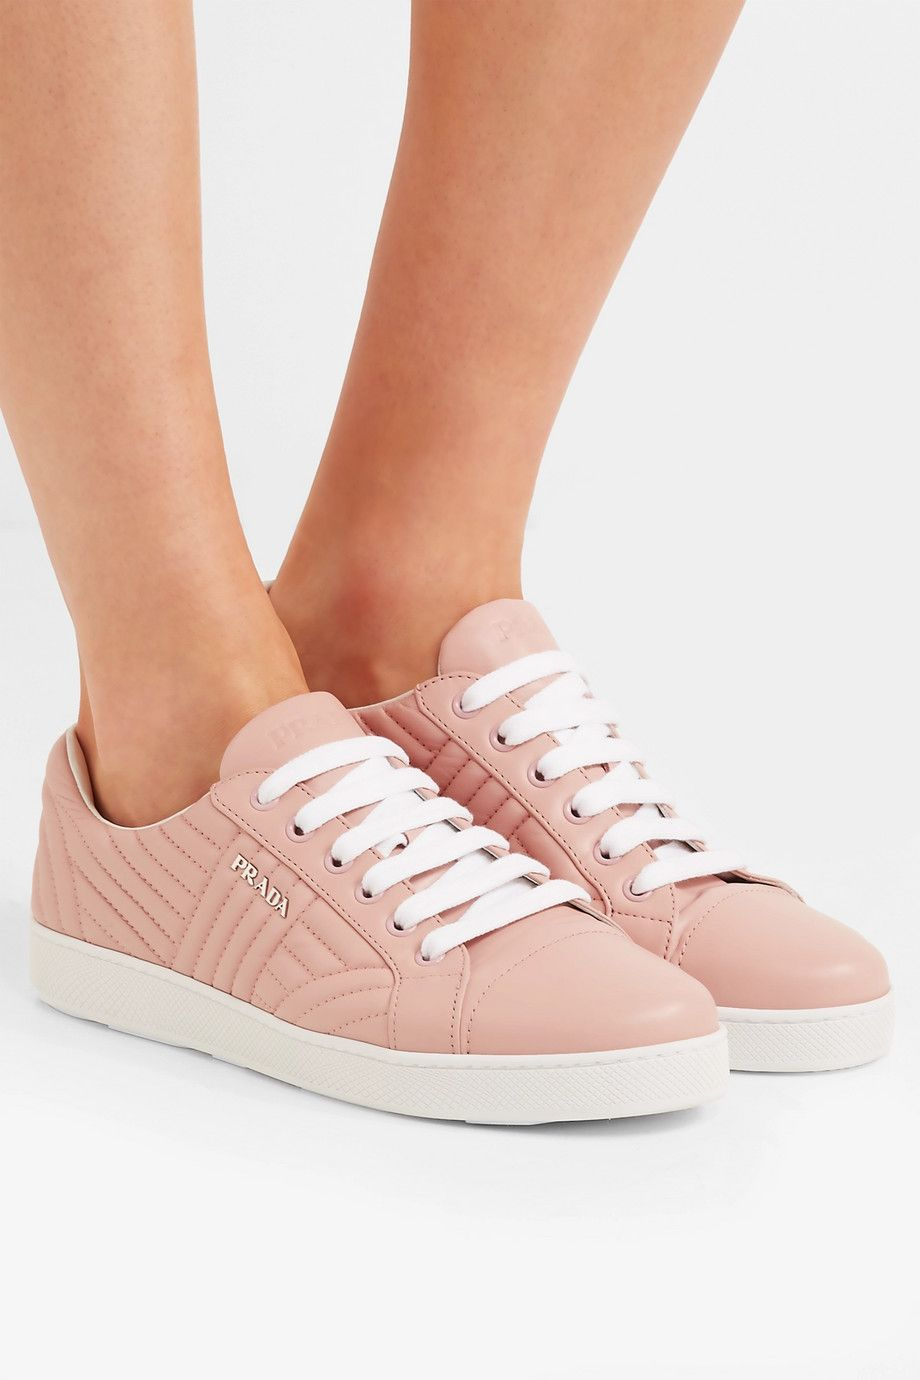 Sneakers for Women On Sale, Peach, Leather, 2017, 2.5 Prada